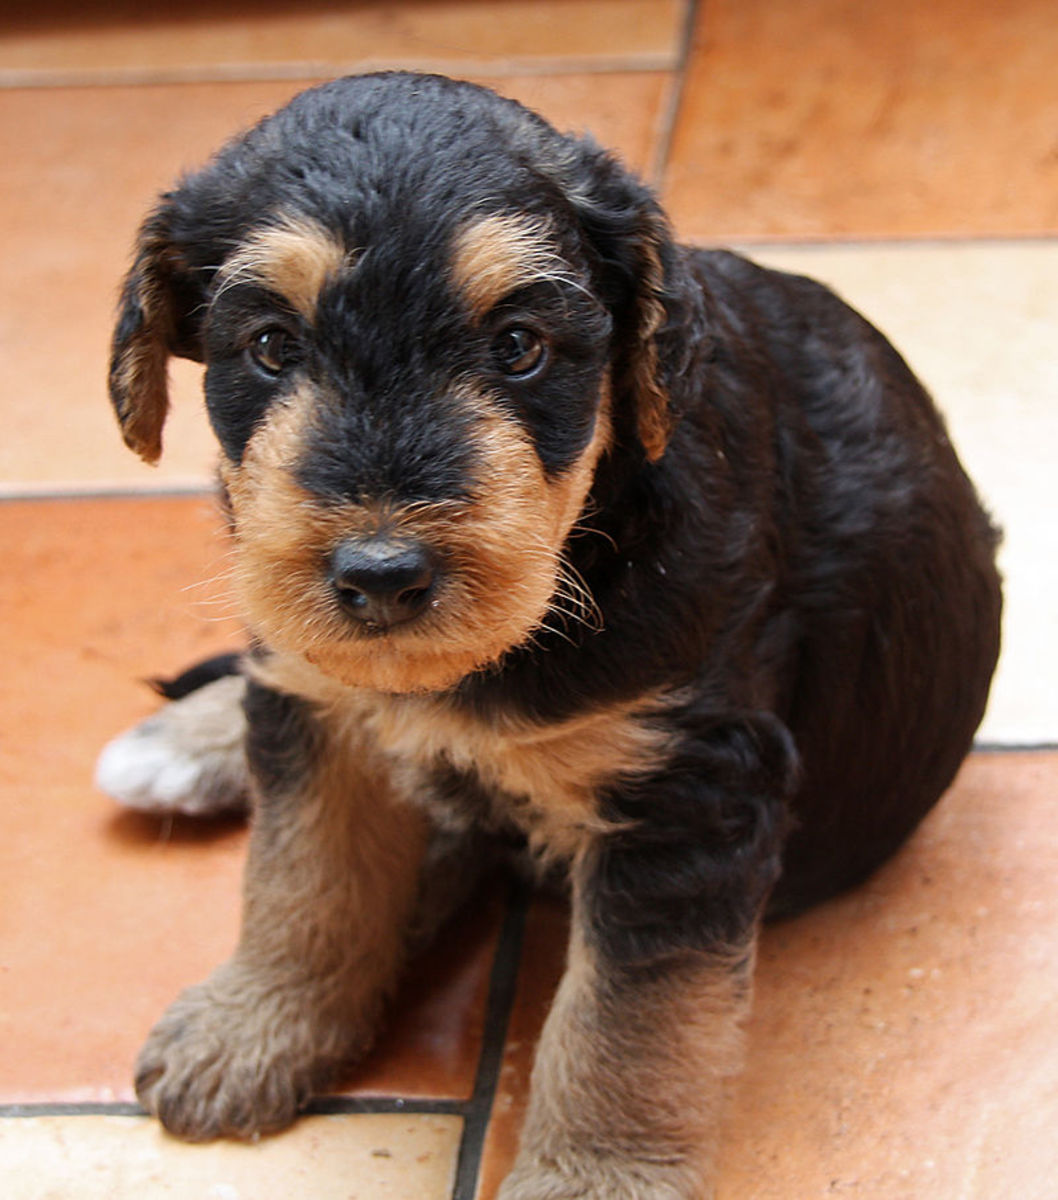 Sweet Airedale Terrier puppy posing for the camera.